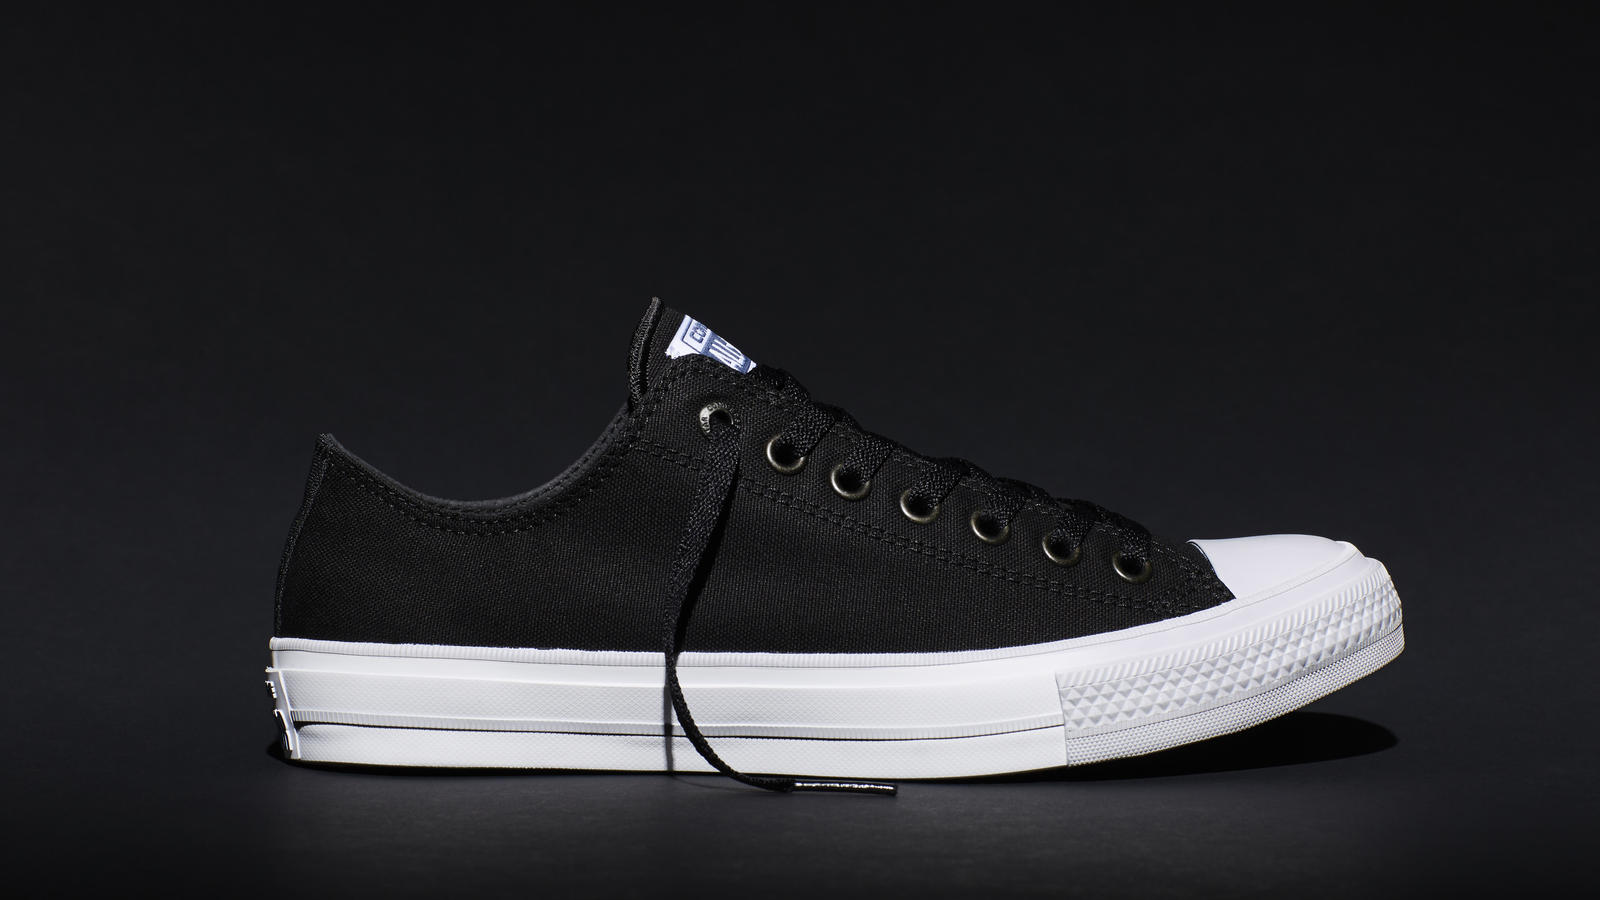 0e189263f83a38 CONVERSE USHERS IN NEW ERA WITH GROUND-BREAKING CHUCK TAYLOR ALL ...